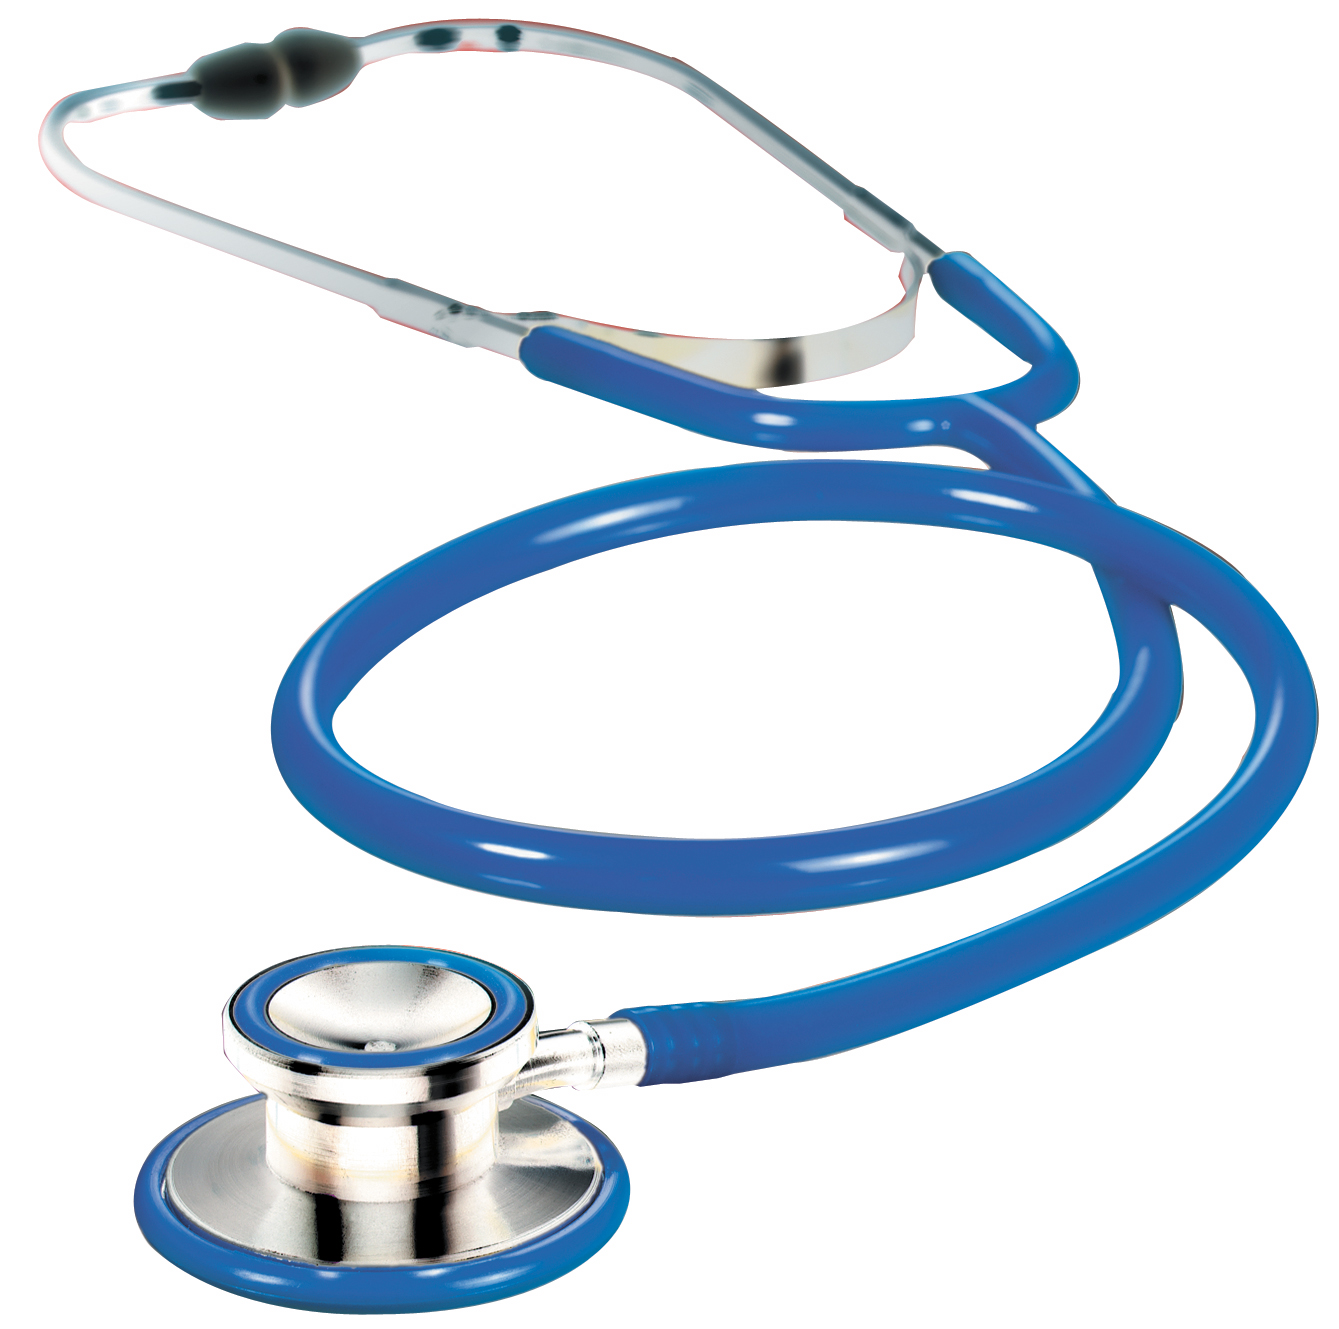 Doctor Stethoscope Clip Art Clipart Free Clipart